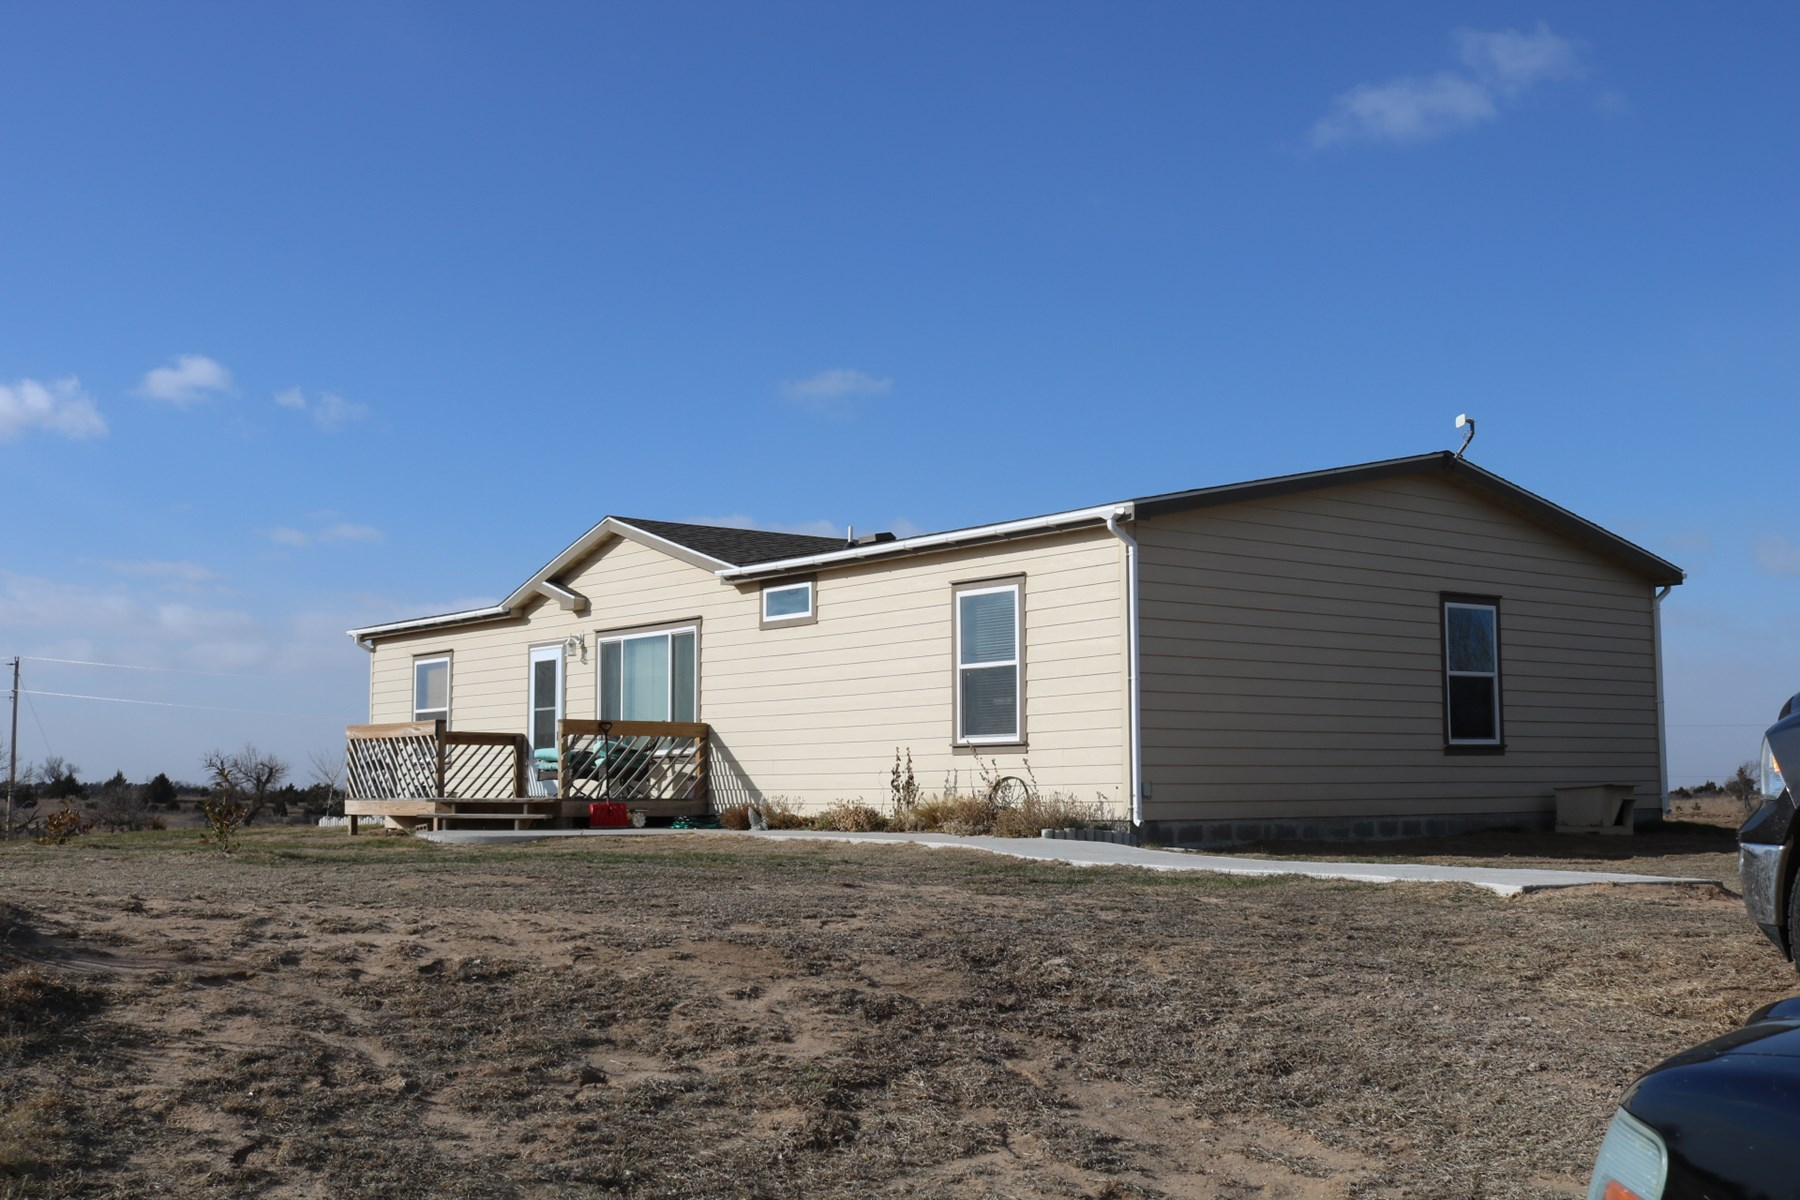 Country Home in Kiowa County, Kansas For Sale